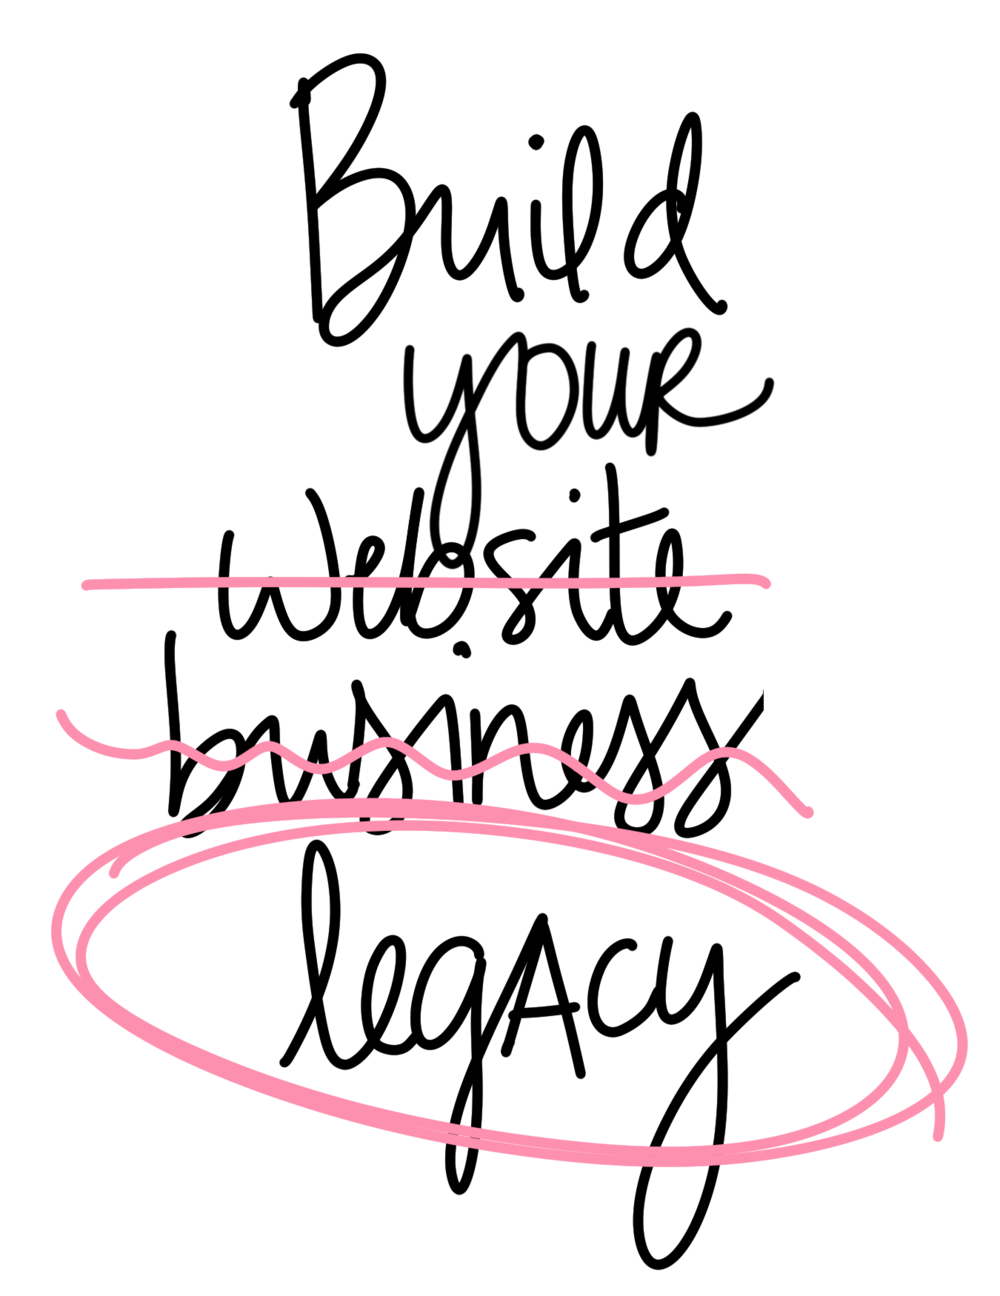 Header_Build_Your_Legacy_Art thicker stroke.png